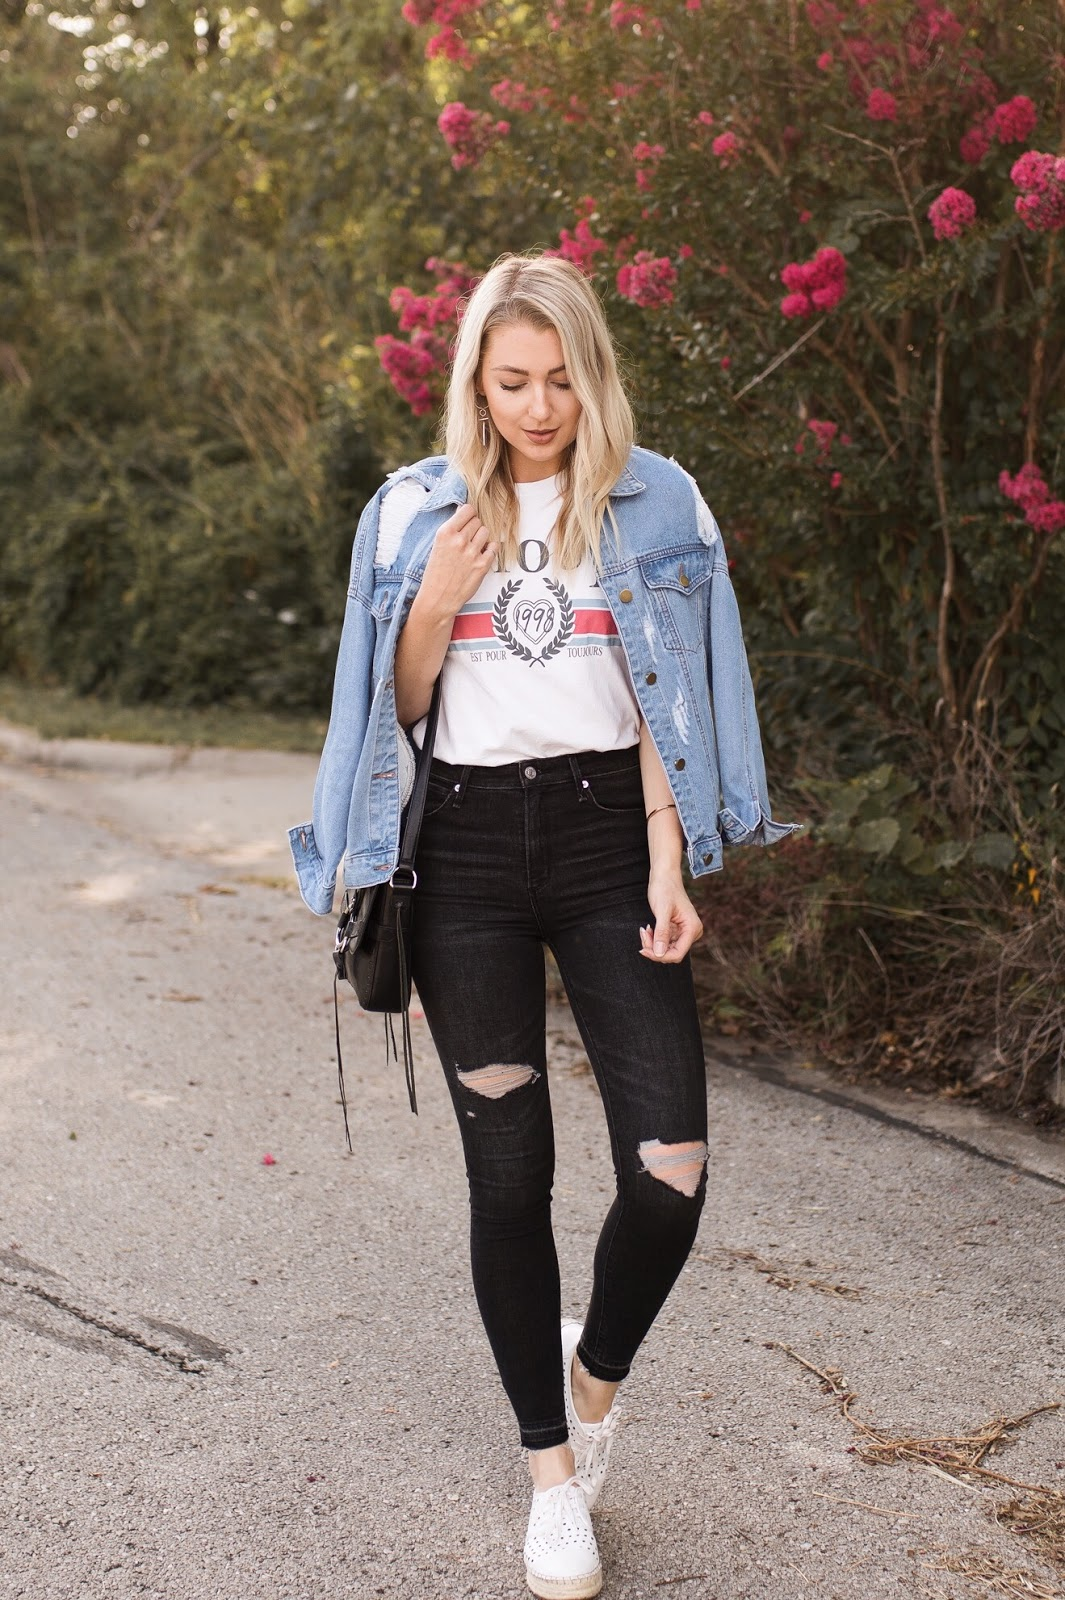 jean jacket + graphic tee